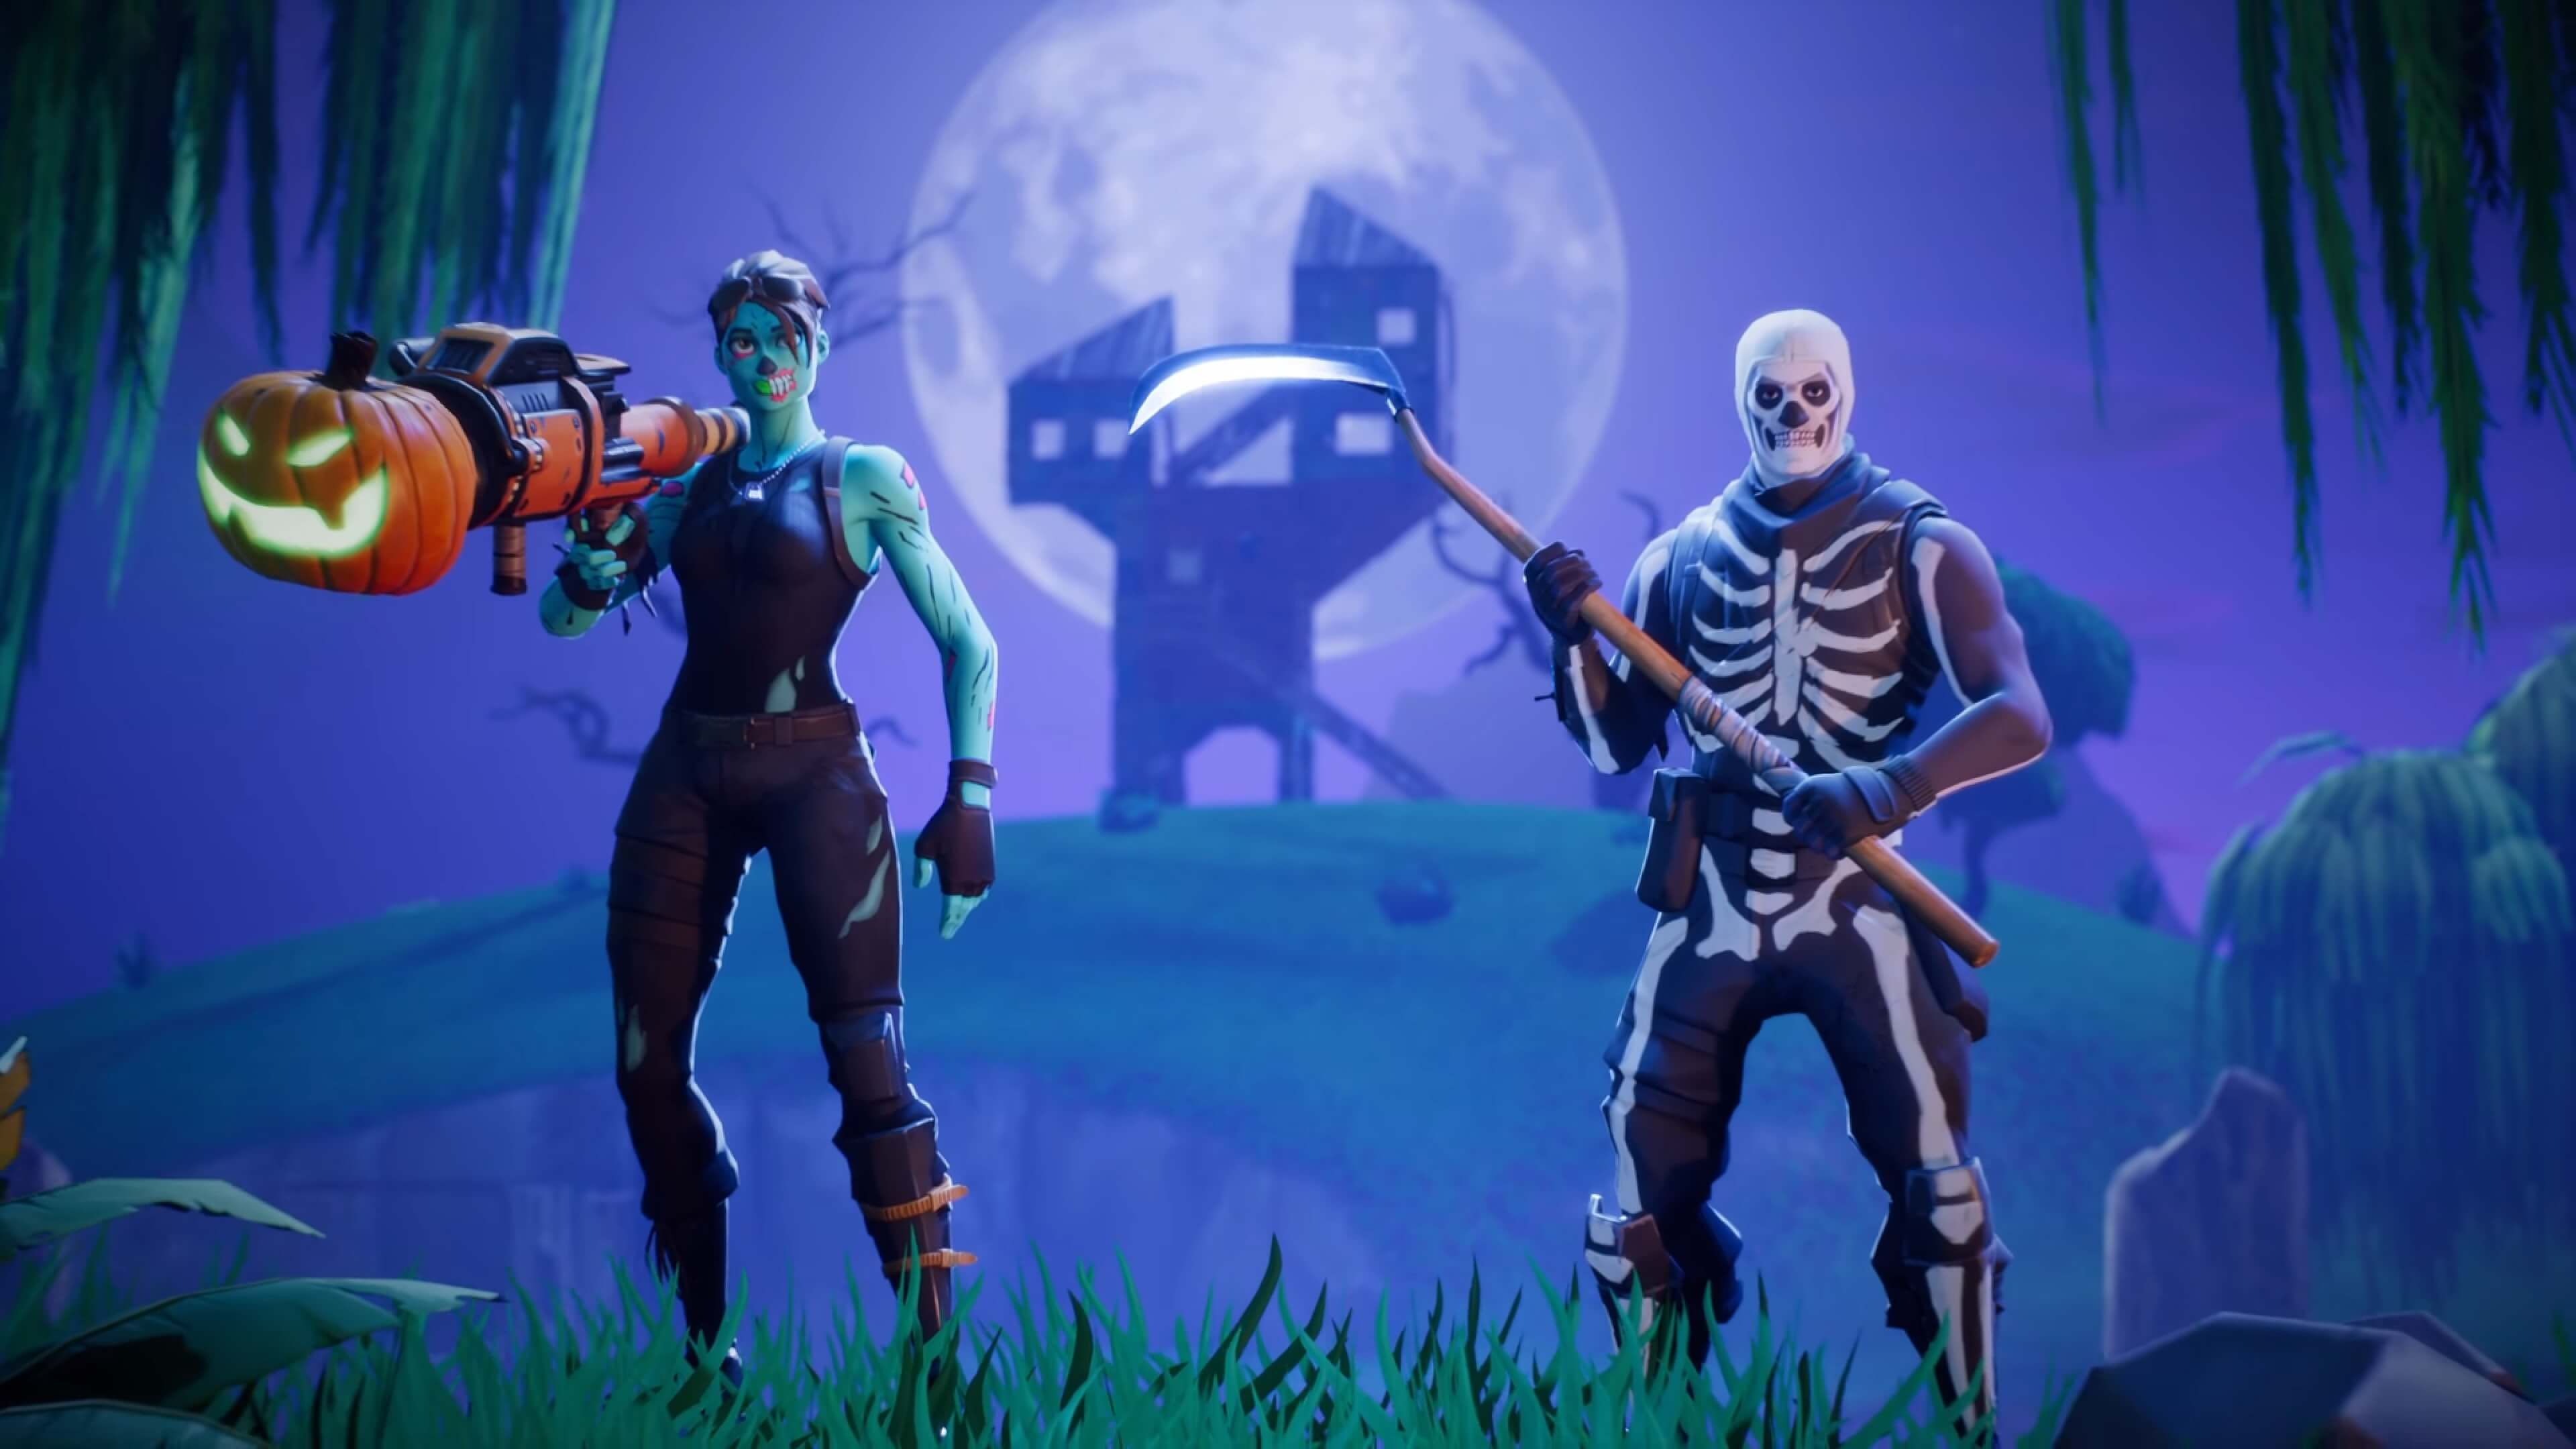 Pin By Wallpaperplex On Fortnite Skull Trooper Wallpapers Games